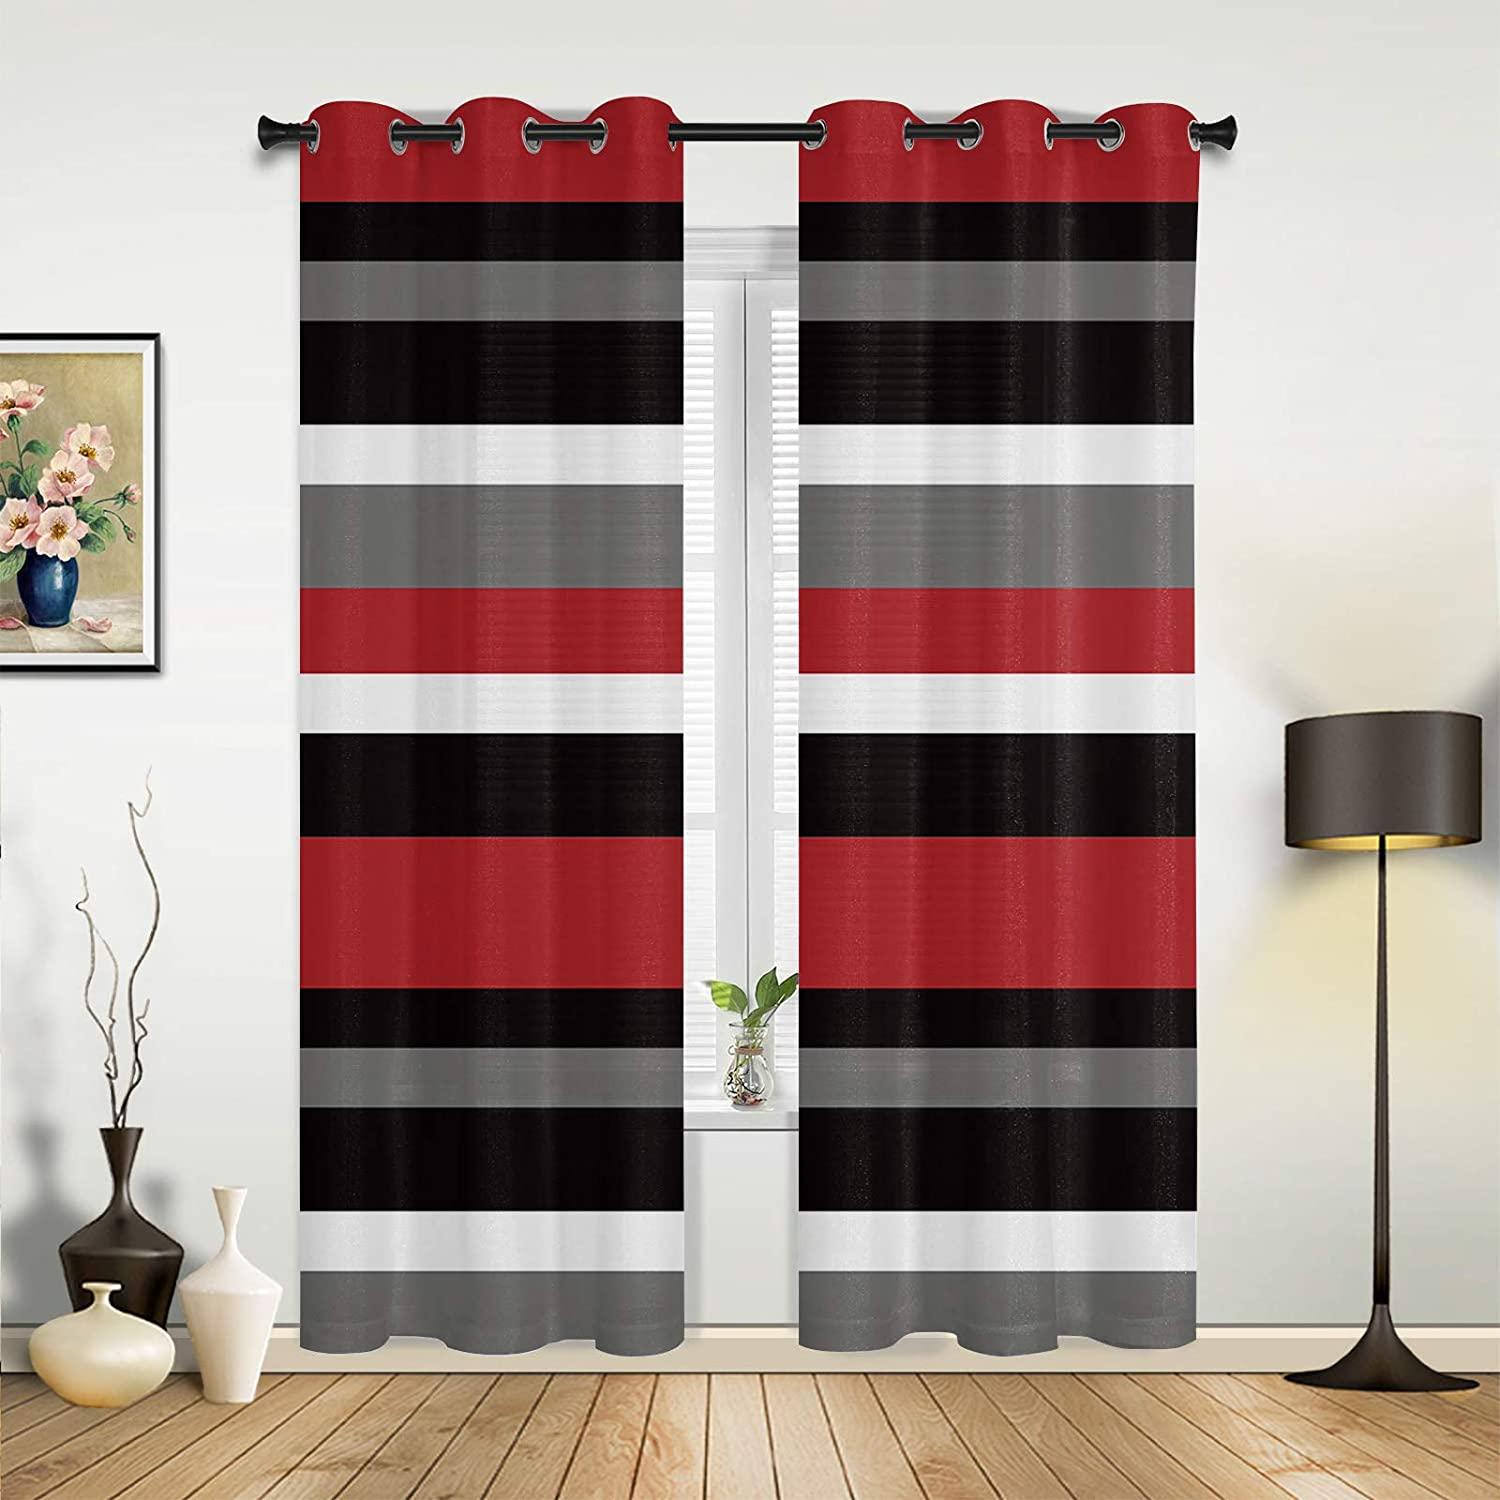 Beauty Decor Window Rare Sheer Recommendation Curtains for Red B Living Bedroom Room